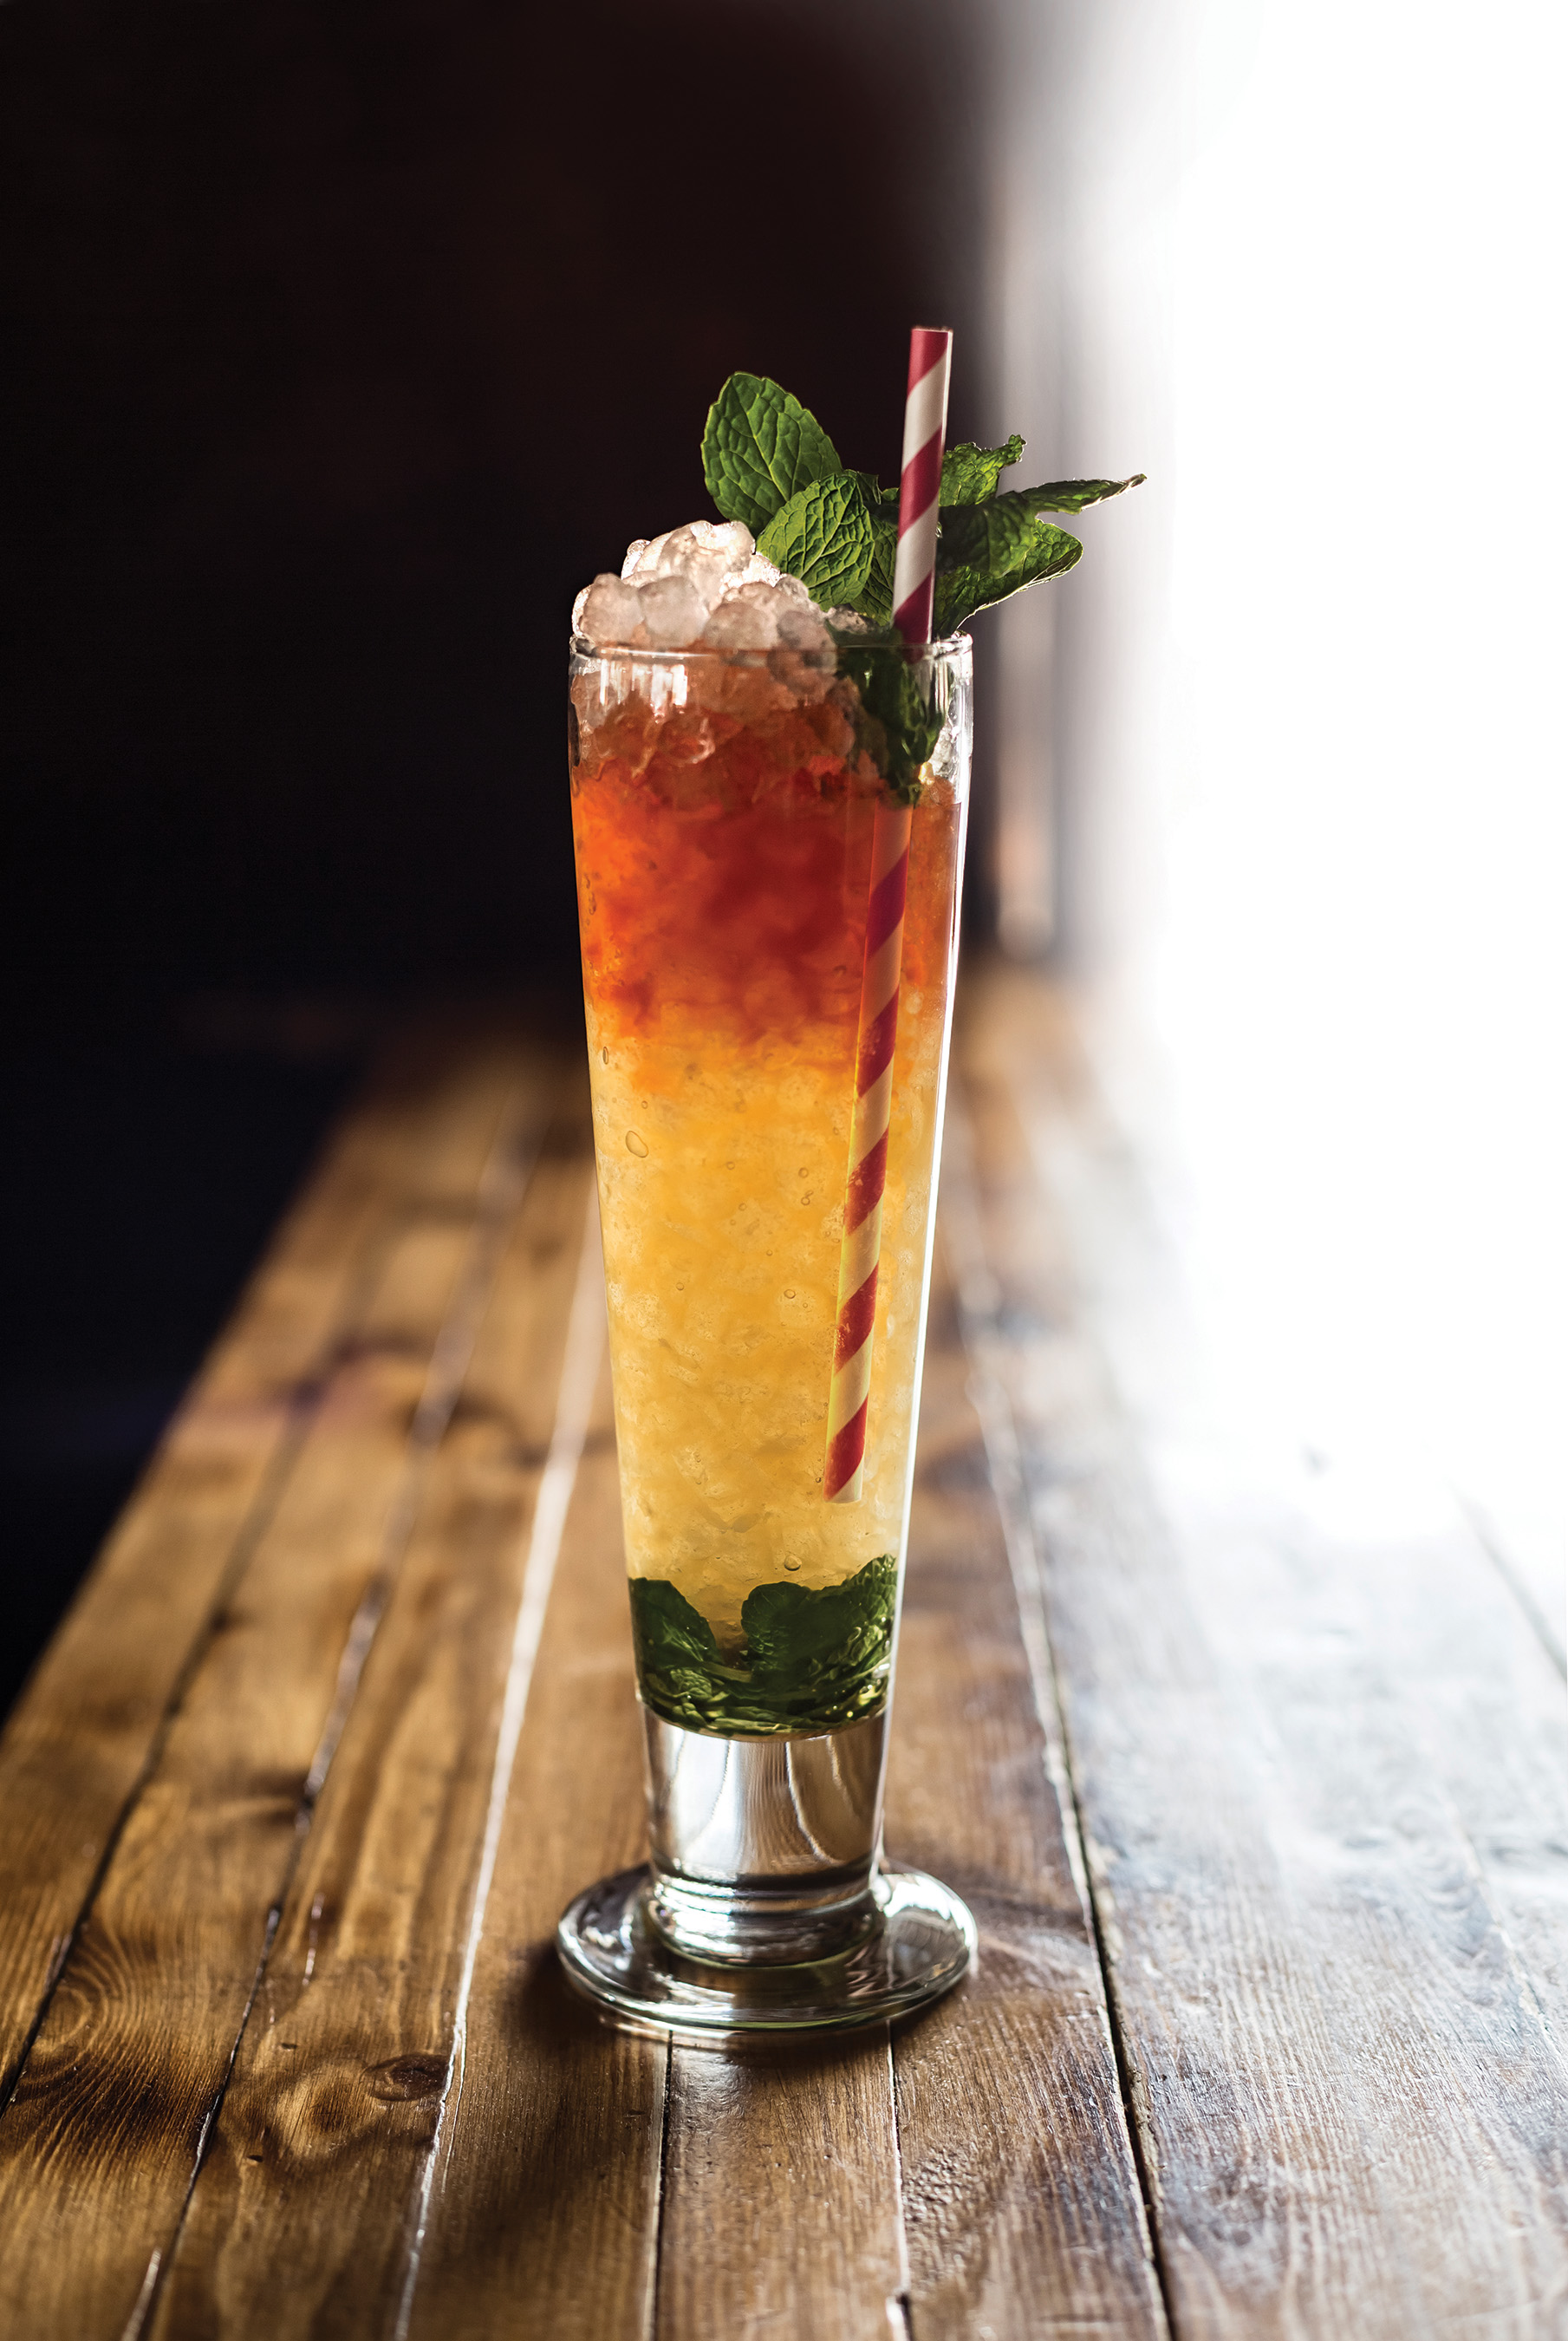 Swizzle sticks developed the swizzle as a category of cocktail, earning its name not by ingredients or flavors, but from the swizzle motion of mixing the drink.